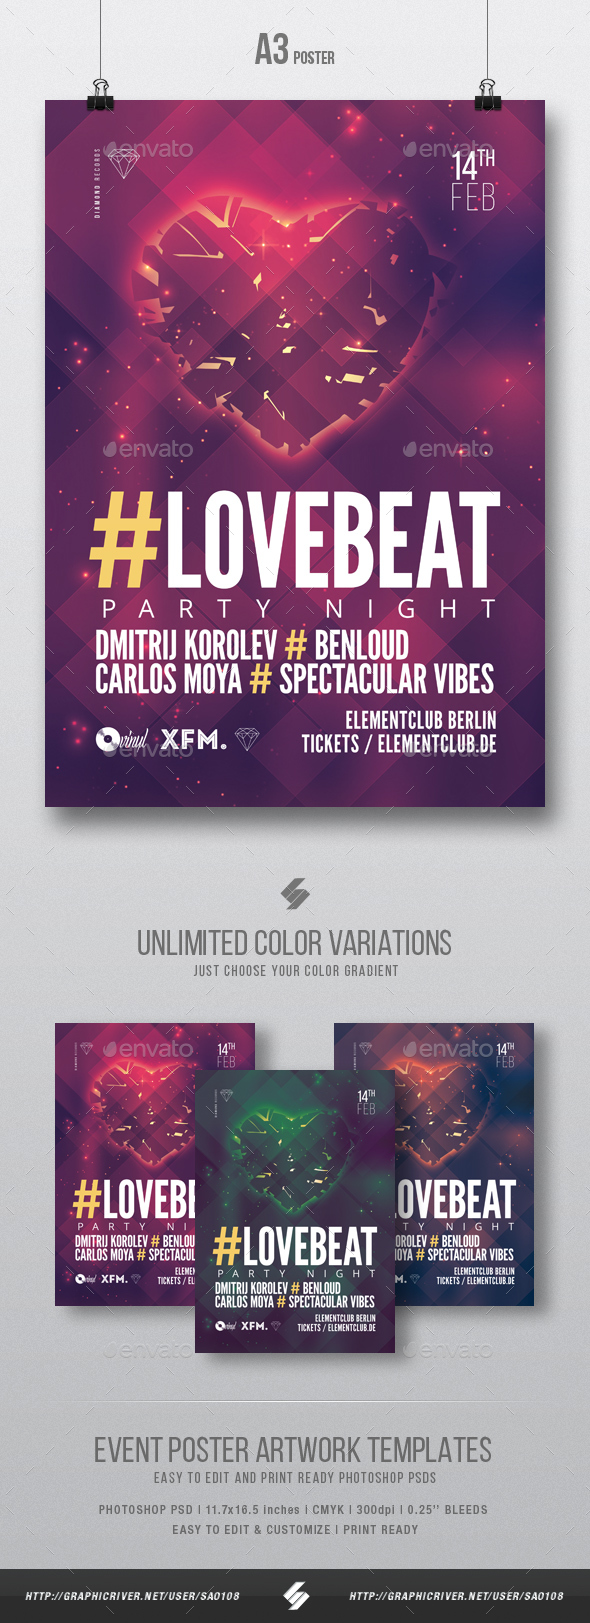 Love Beat vol2 - House Music Party Flyer / Poster Template A3 - Clubs & Parties Events